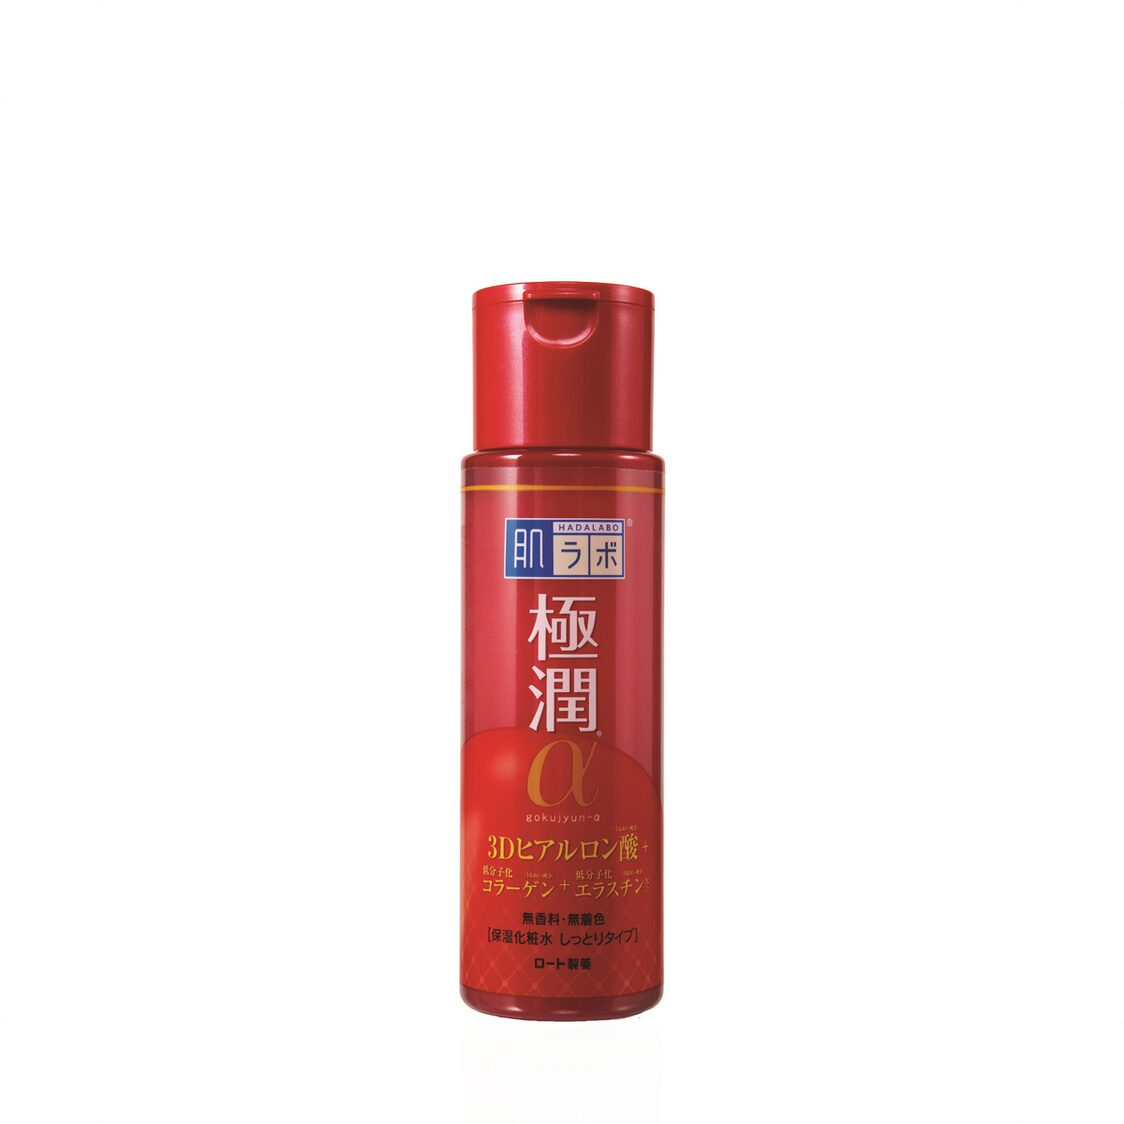 Hada Labo Firming  Lifting Hydrating Lotion